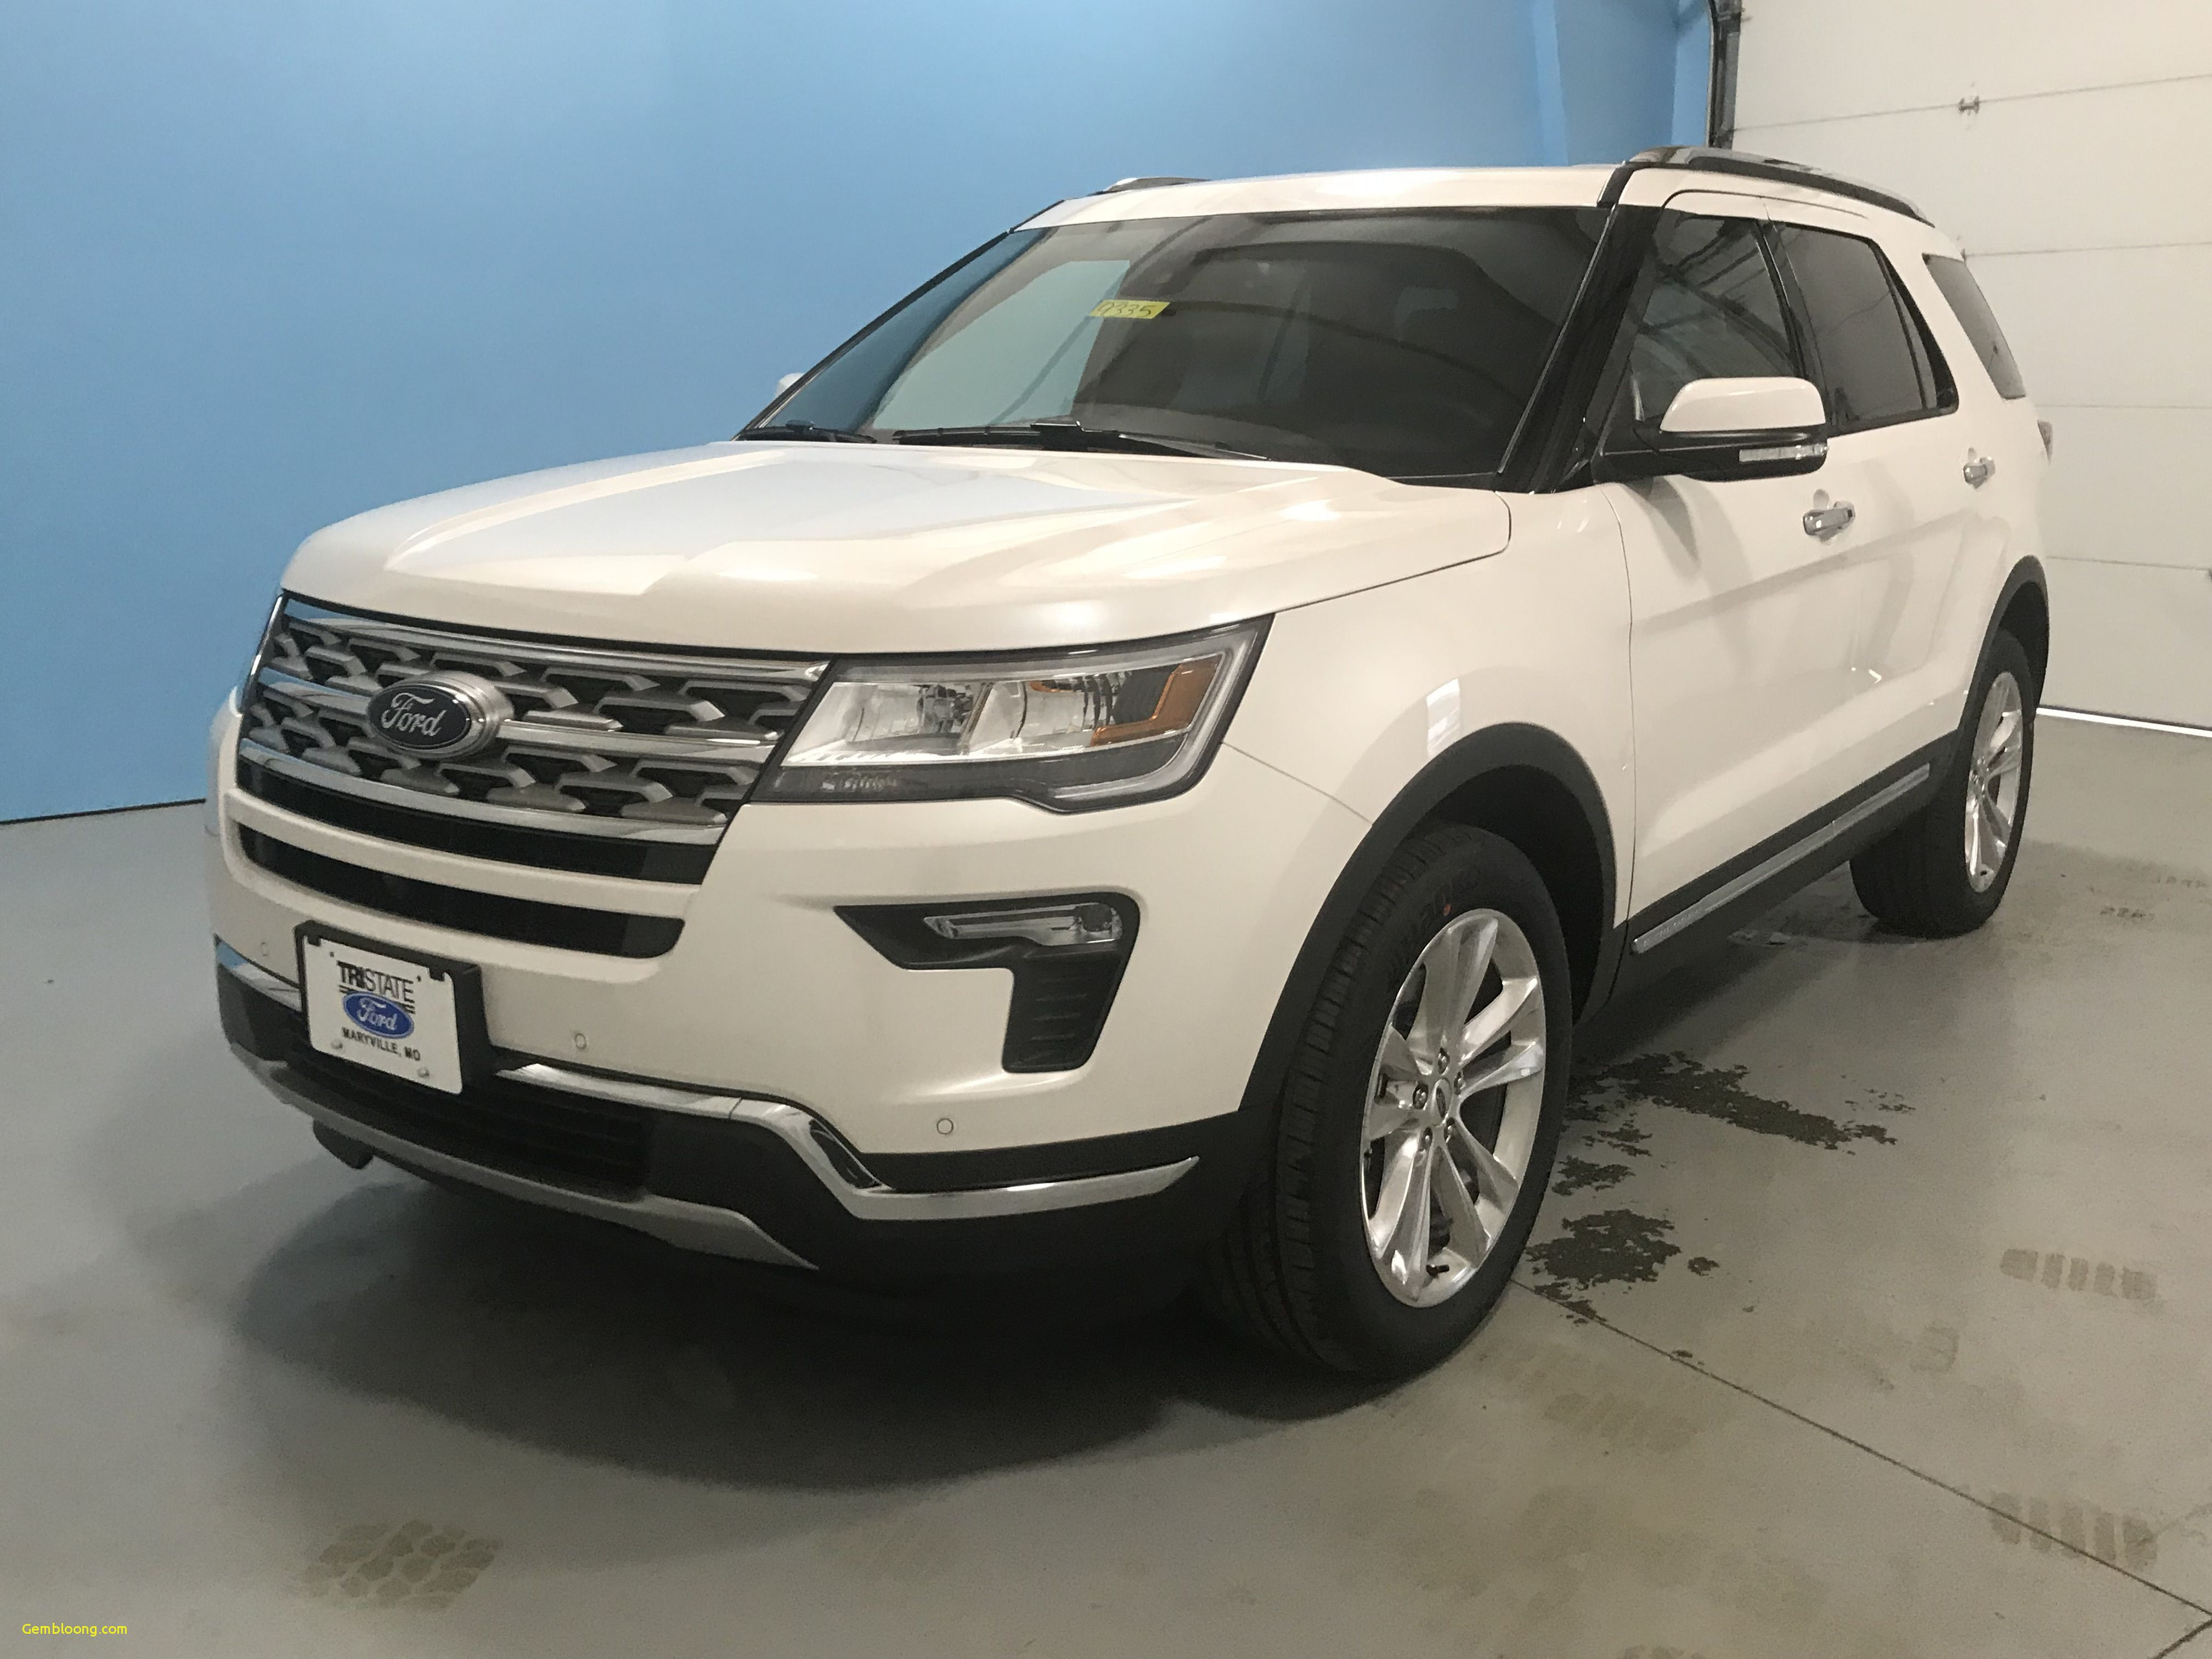 The Ford Escape 2018 The Ford Escape 2018 Interior Ford Kuga Vignale With Images Ford Explorer Limited Ford Explorer Ford Flex